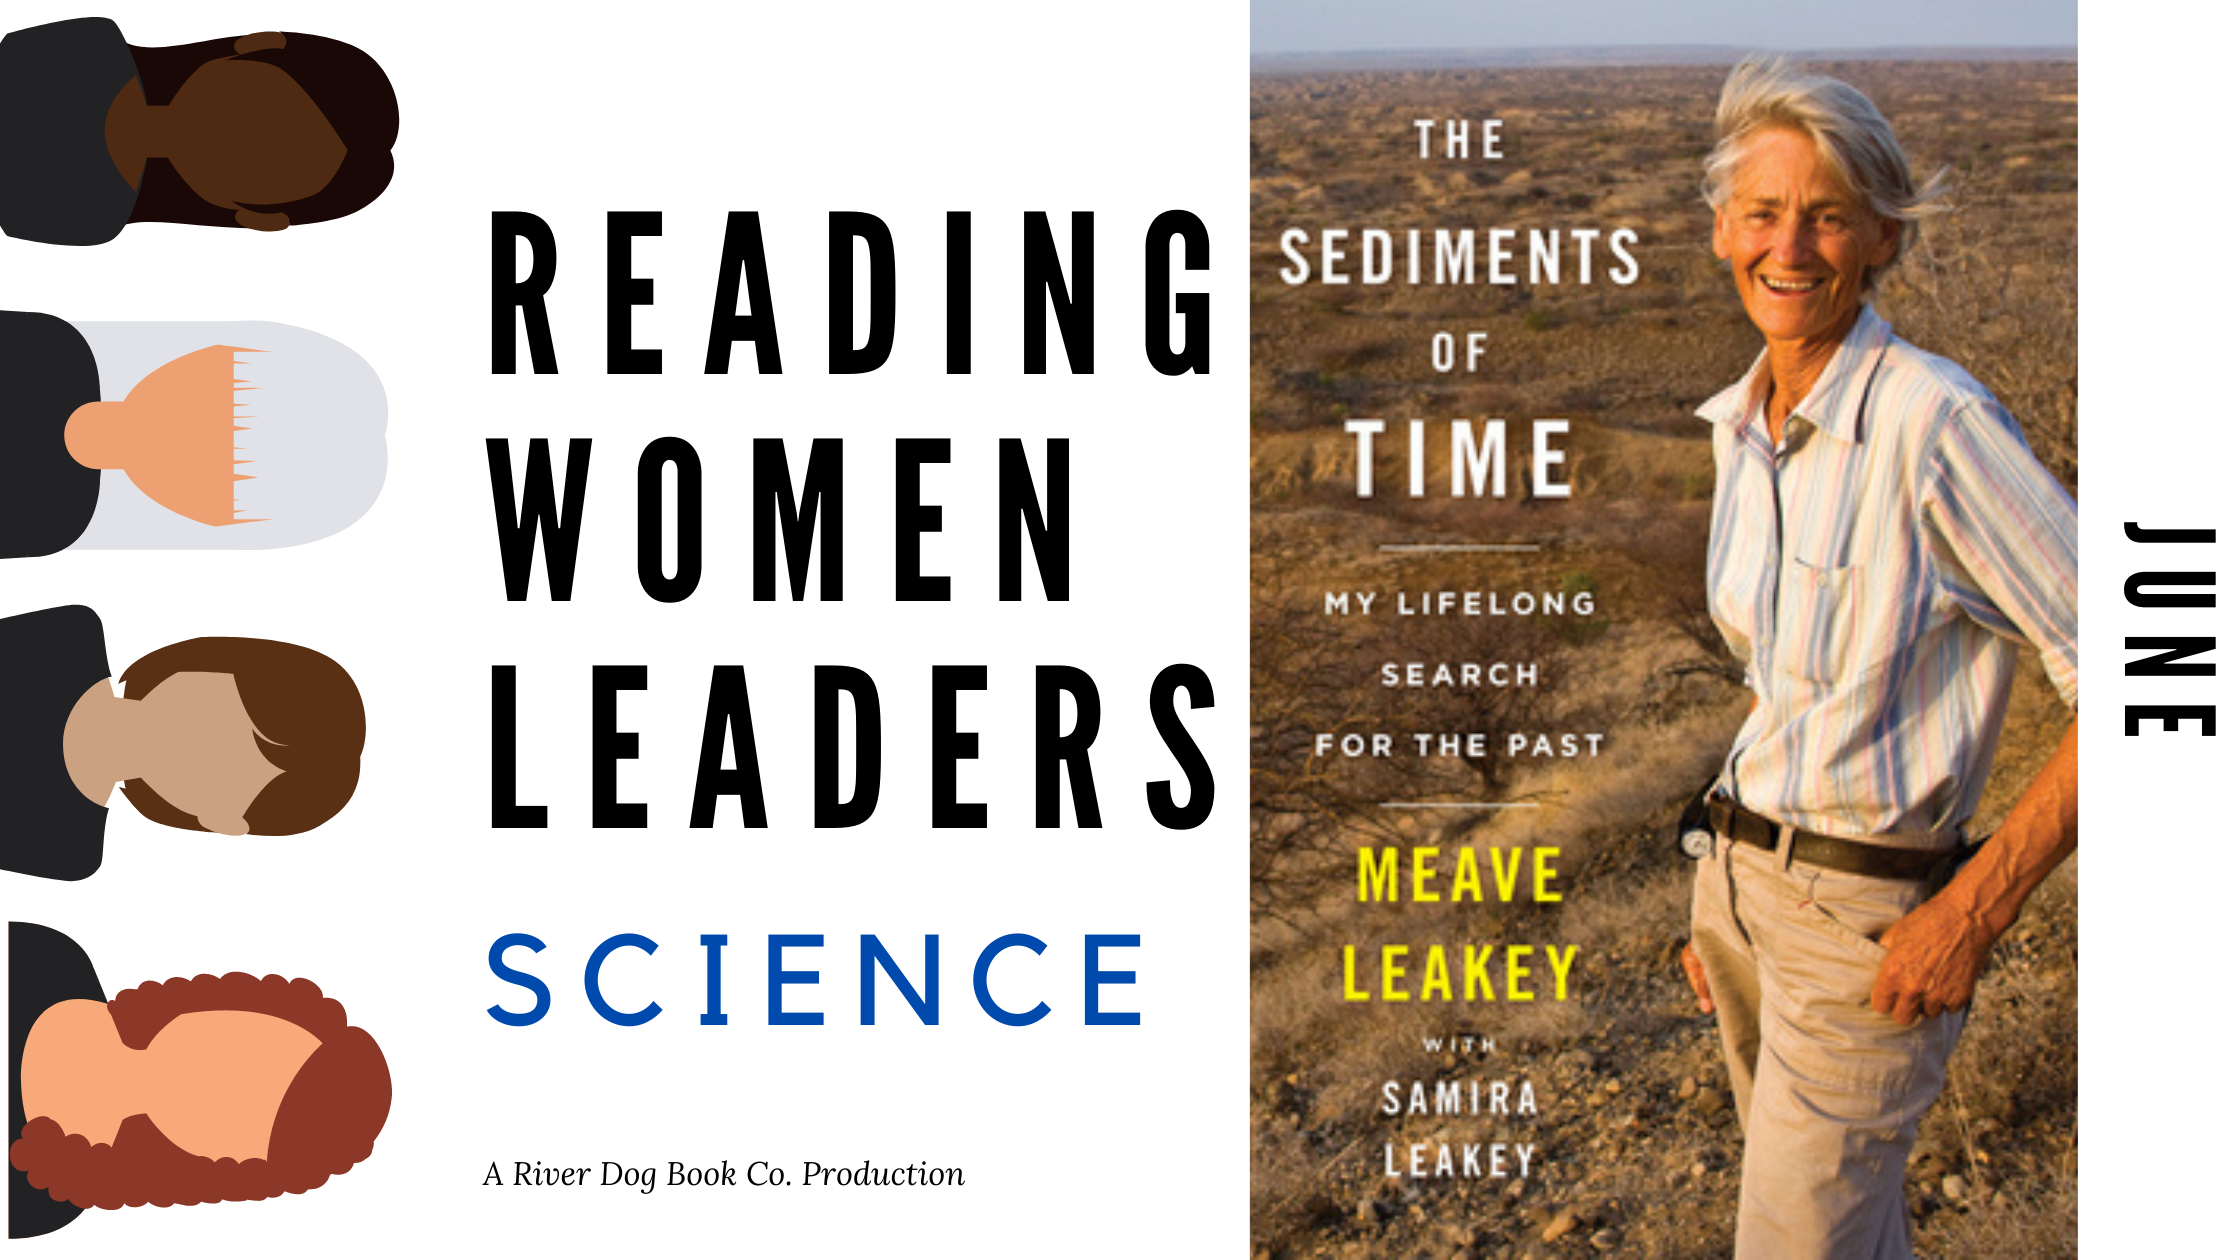 Reading Women Leaders: Science